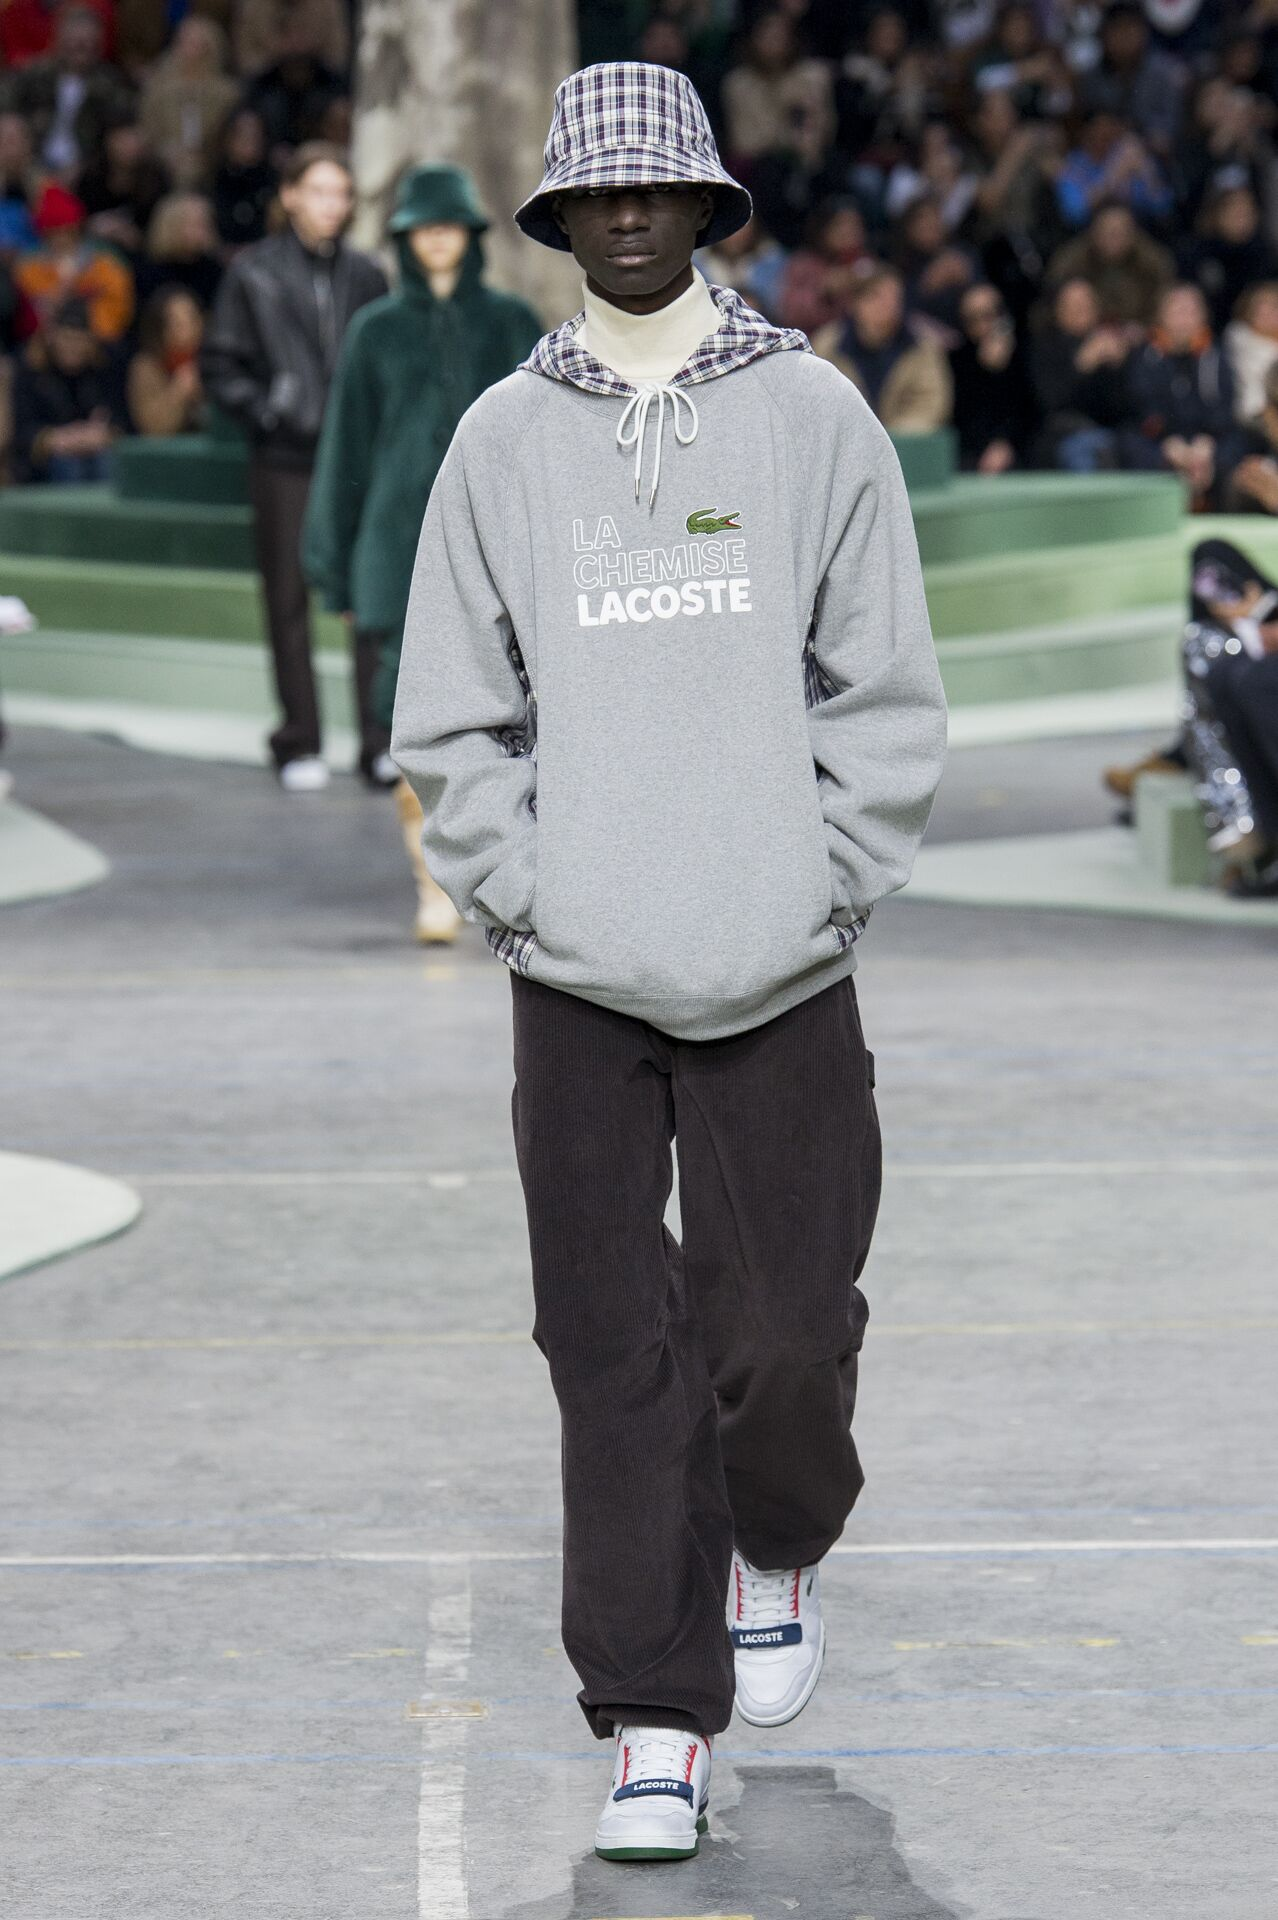 Catwalk Lacoste Man Fashion Show Winter 2018